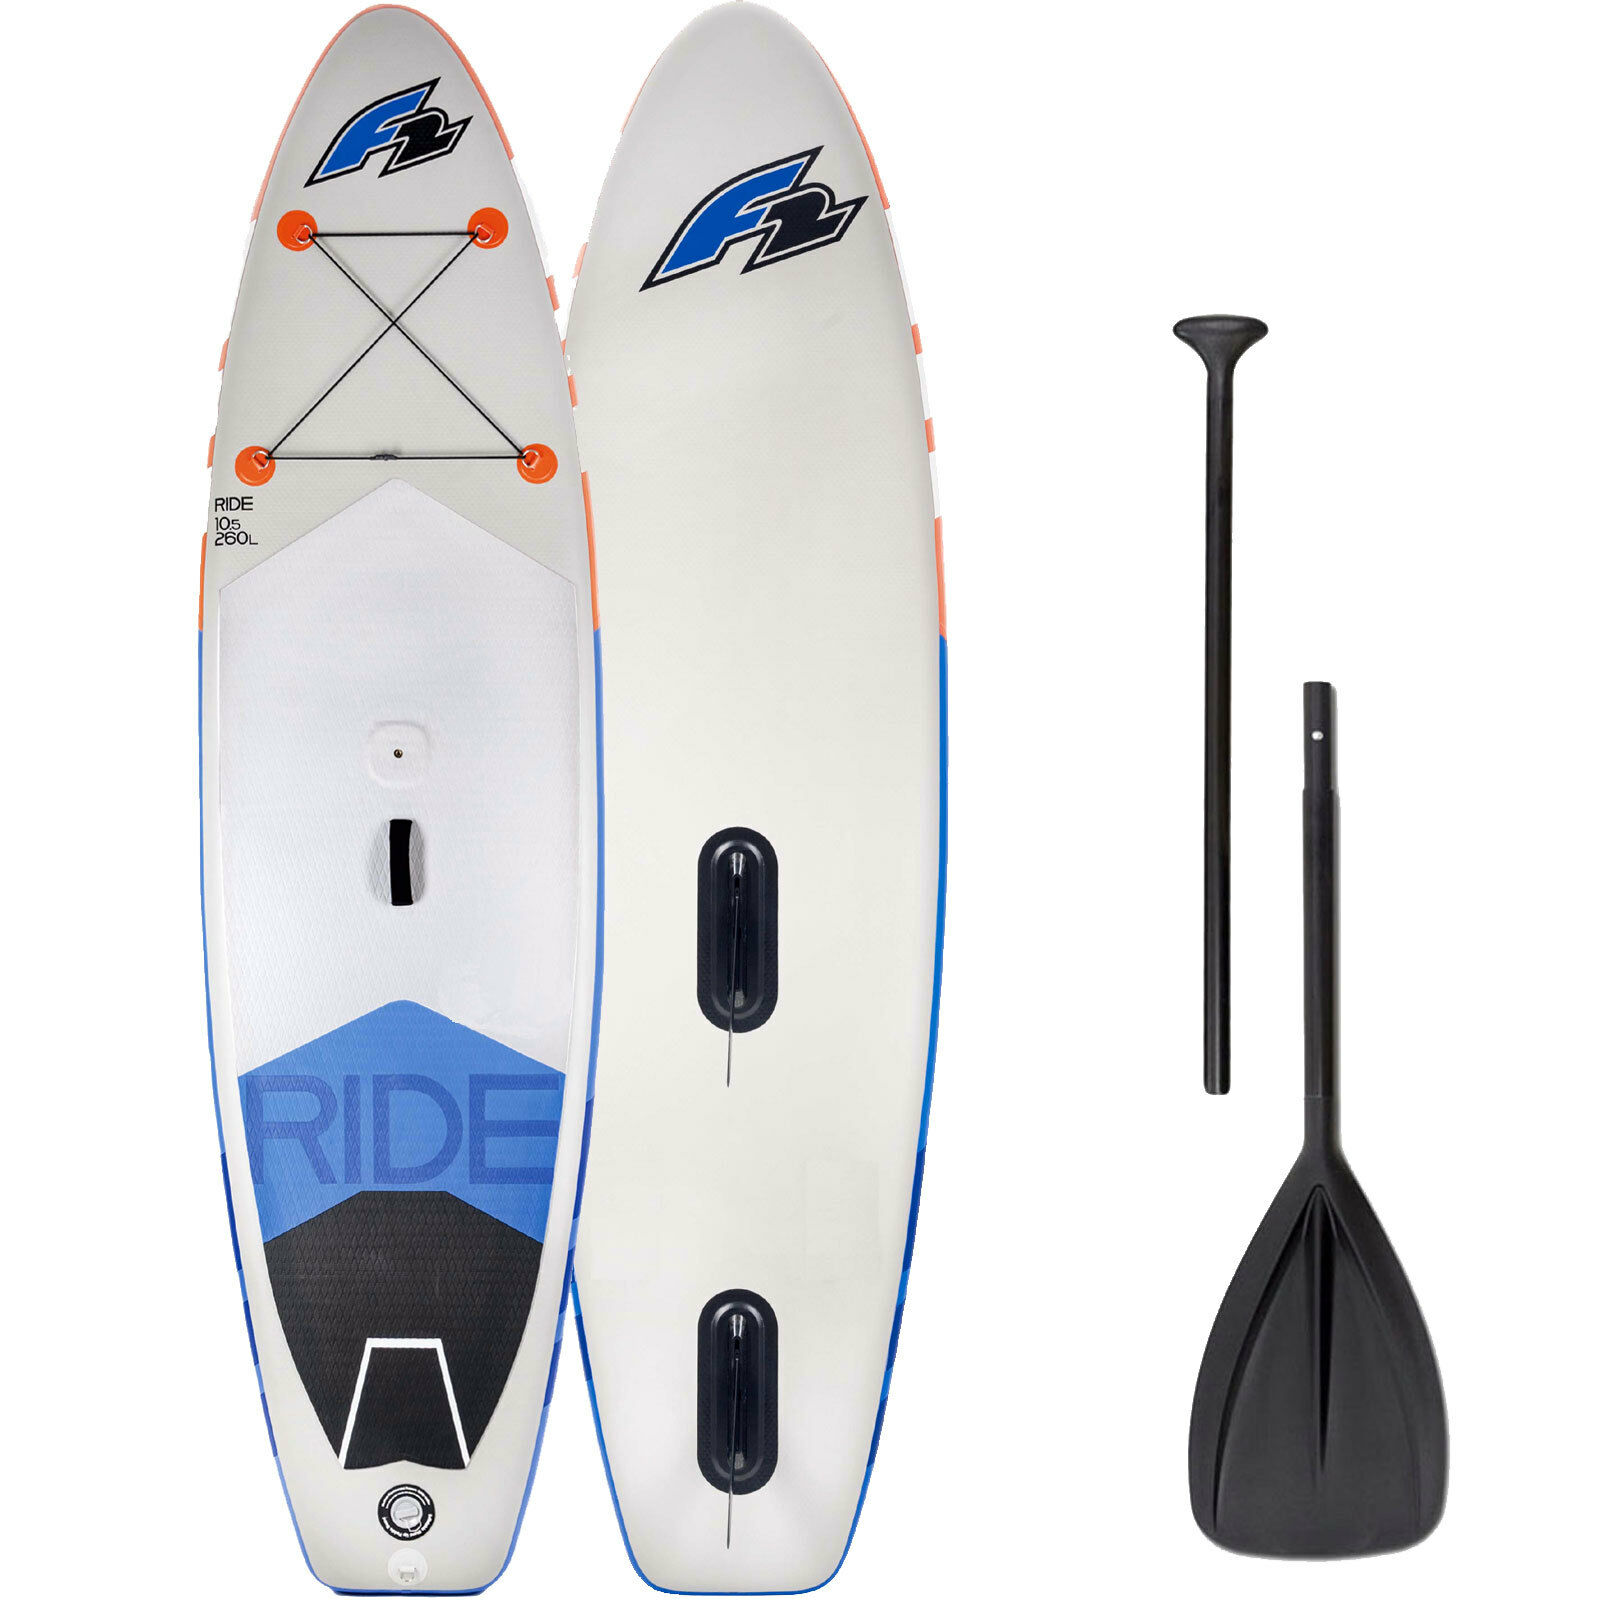 F2 Inflatable Ride Windsurf Sup Stand up Paddle Board I-Sup Ws Paddleboard Set